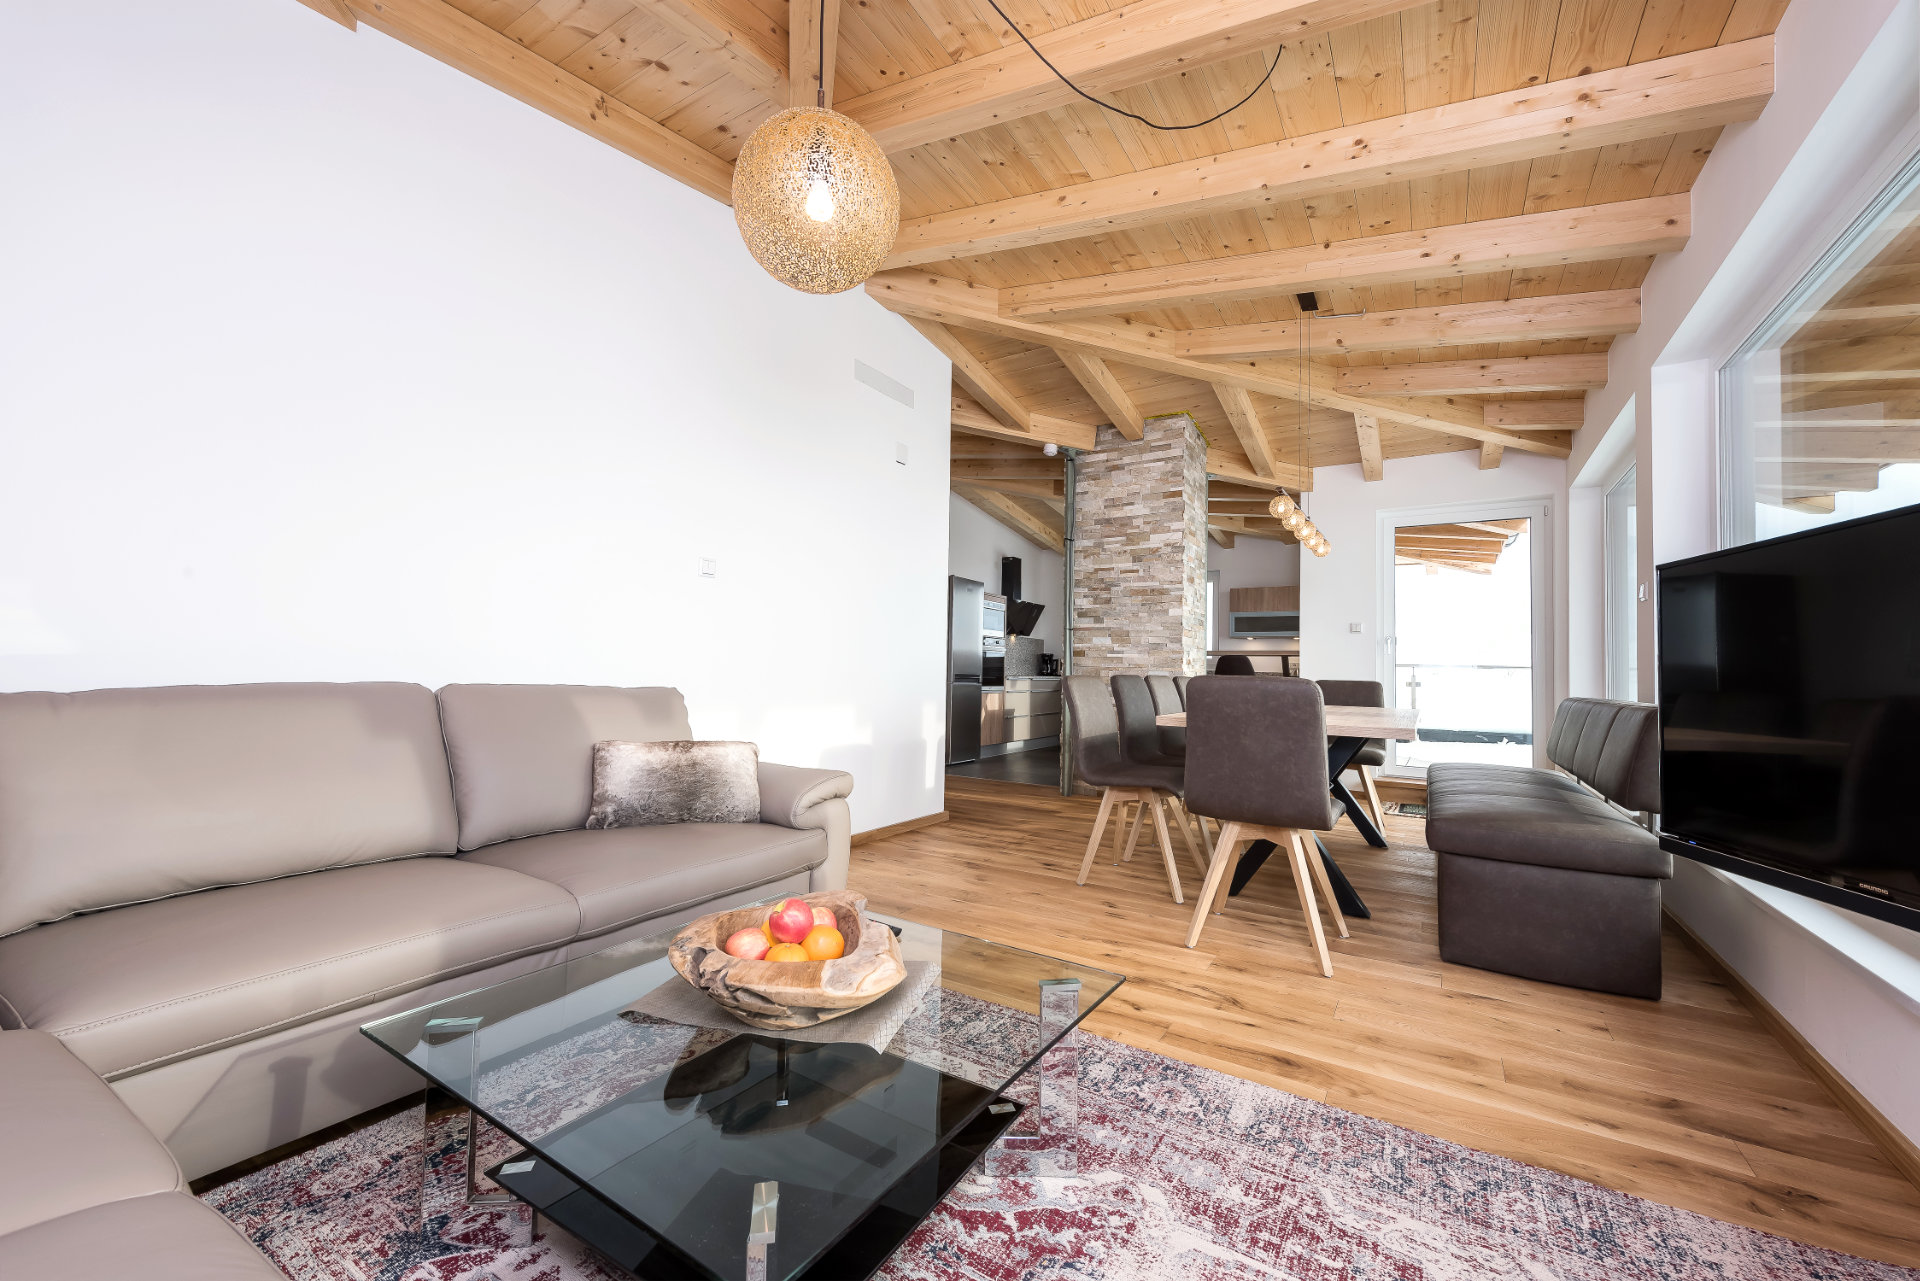 penthouse-in-zell-am-see